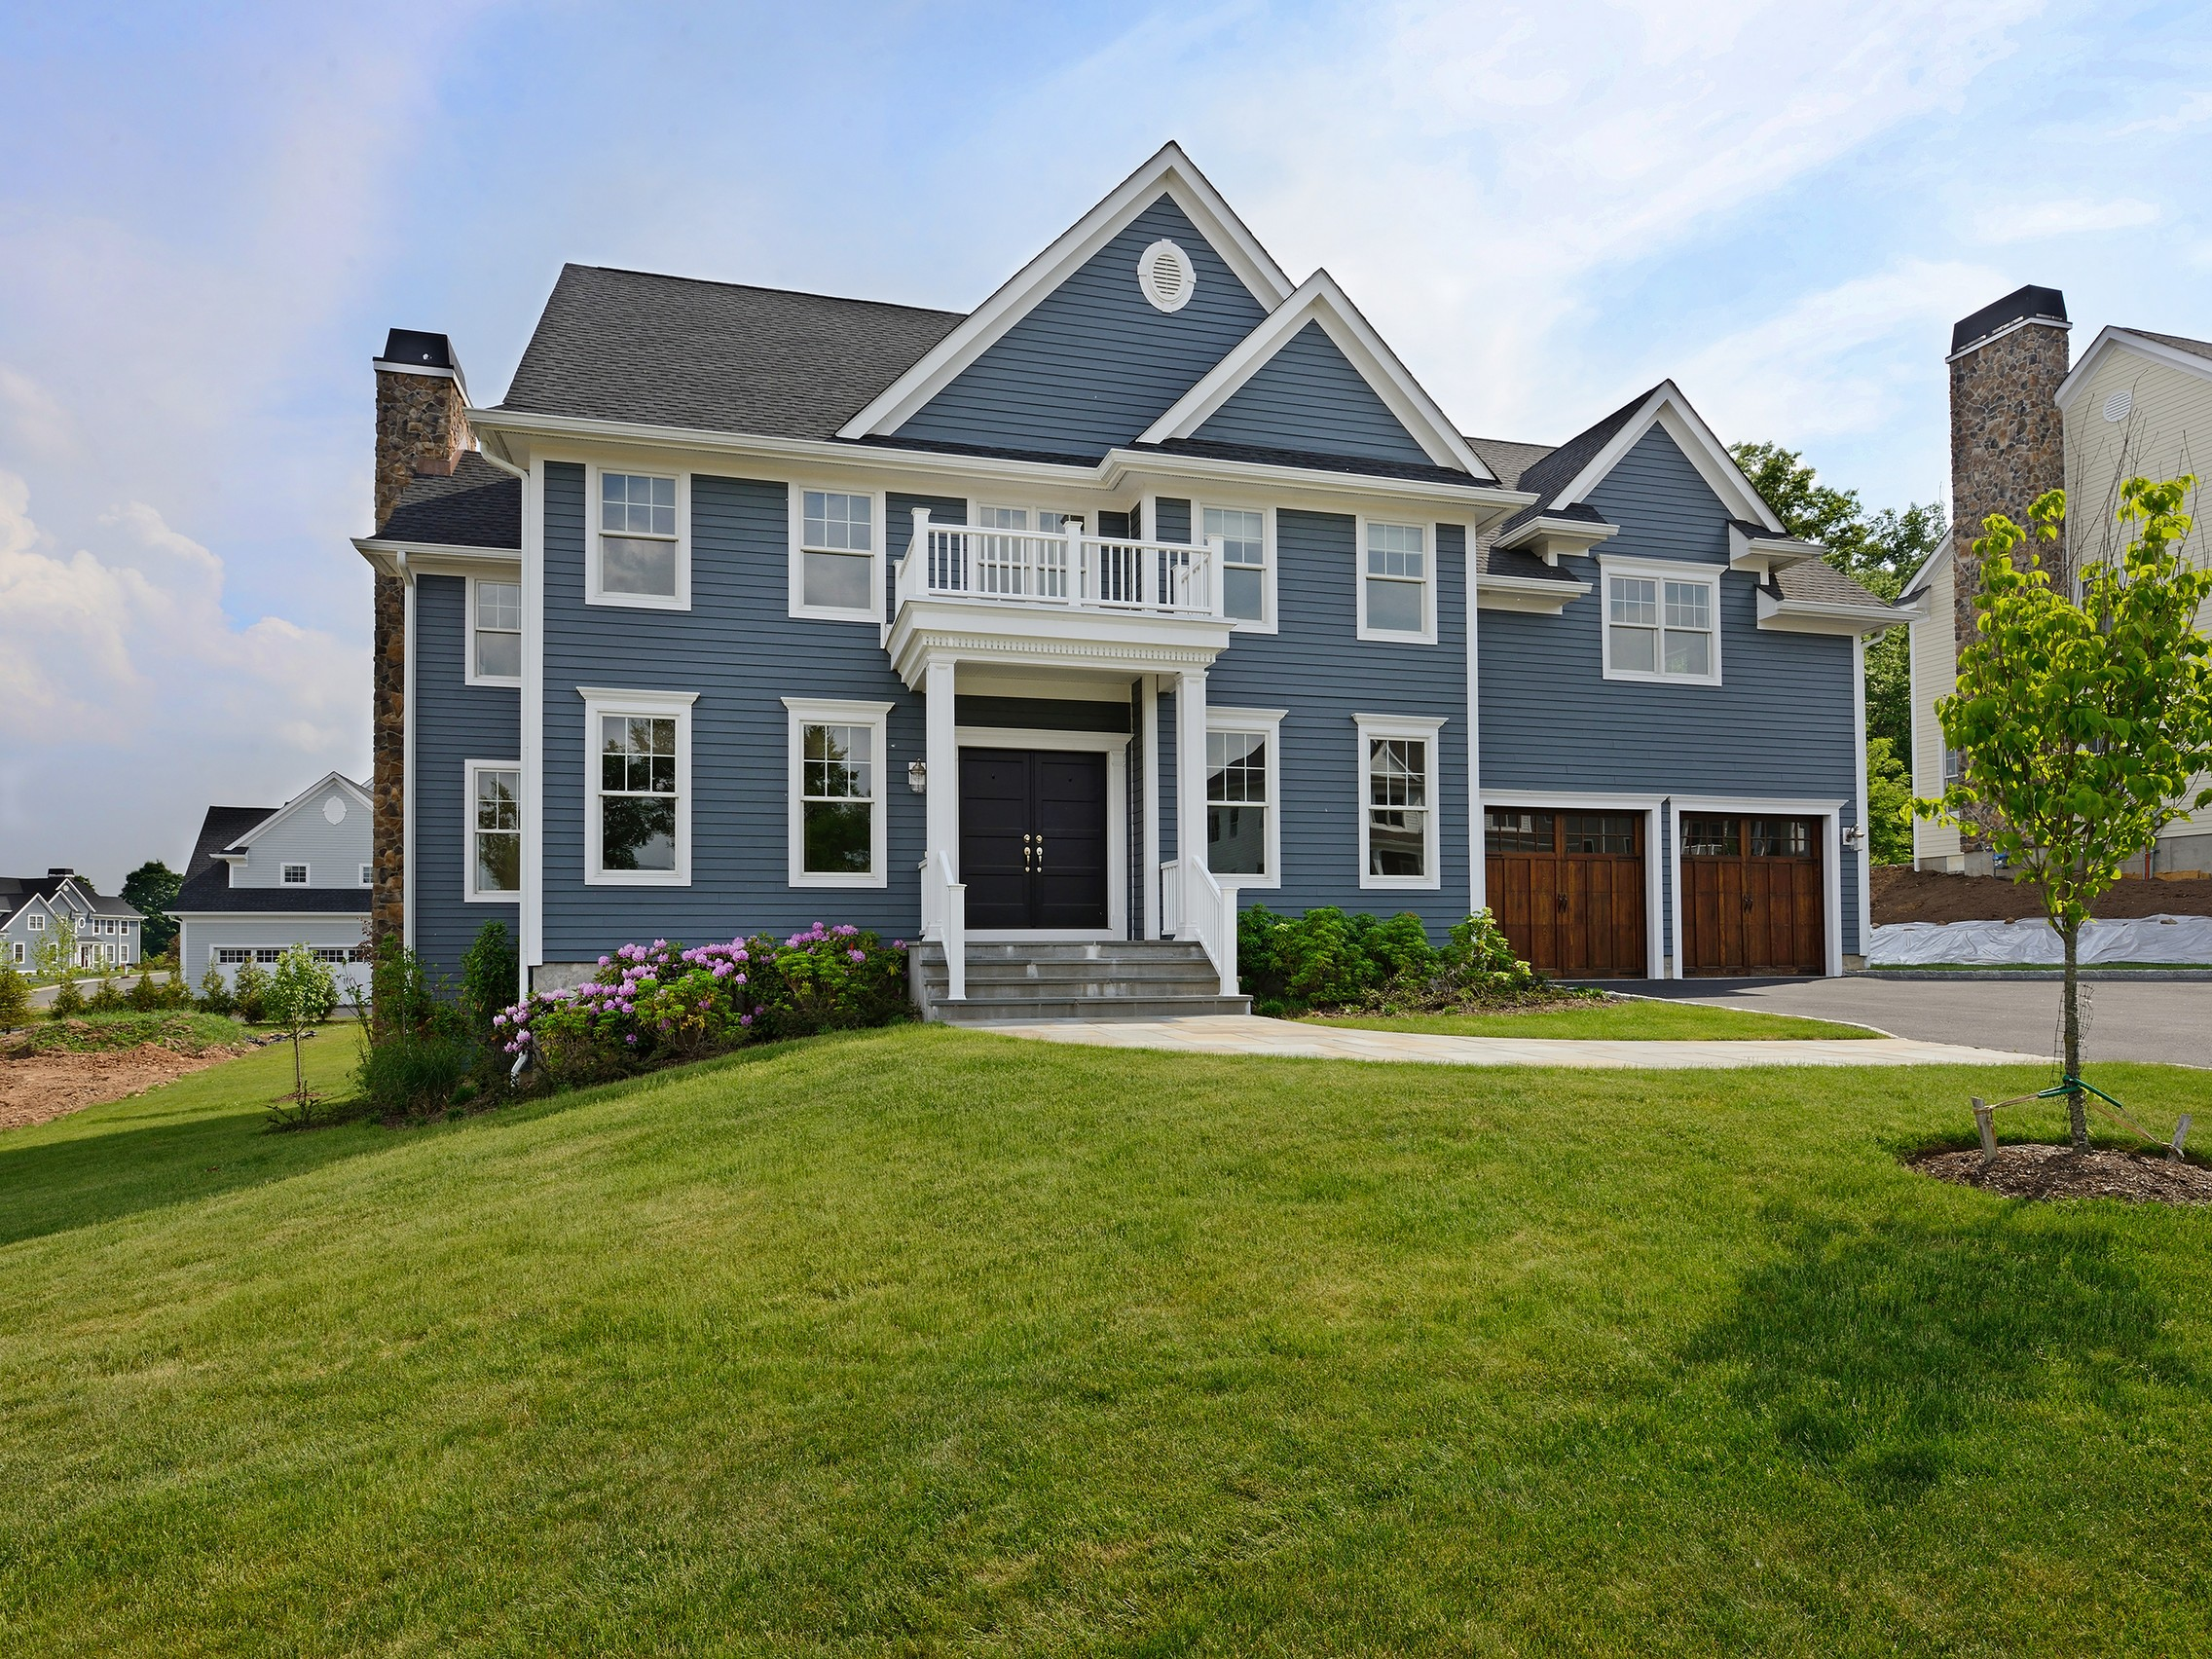 Single Family Home for Sale at Modern Village Living 10 Riverton Drive Upper Nyack, New York 10960 United States